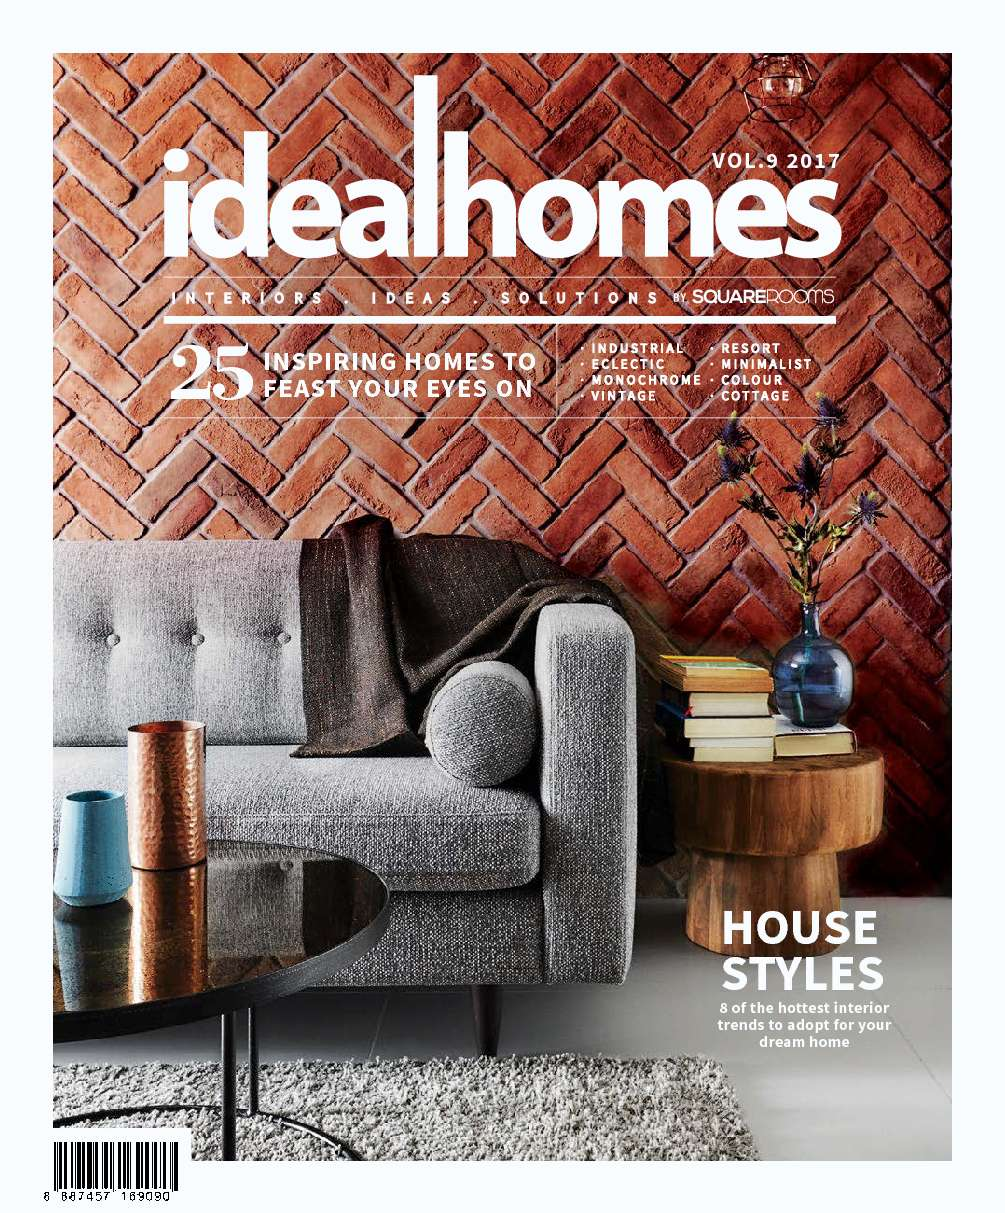 IdealHomes 2017